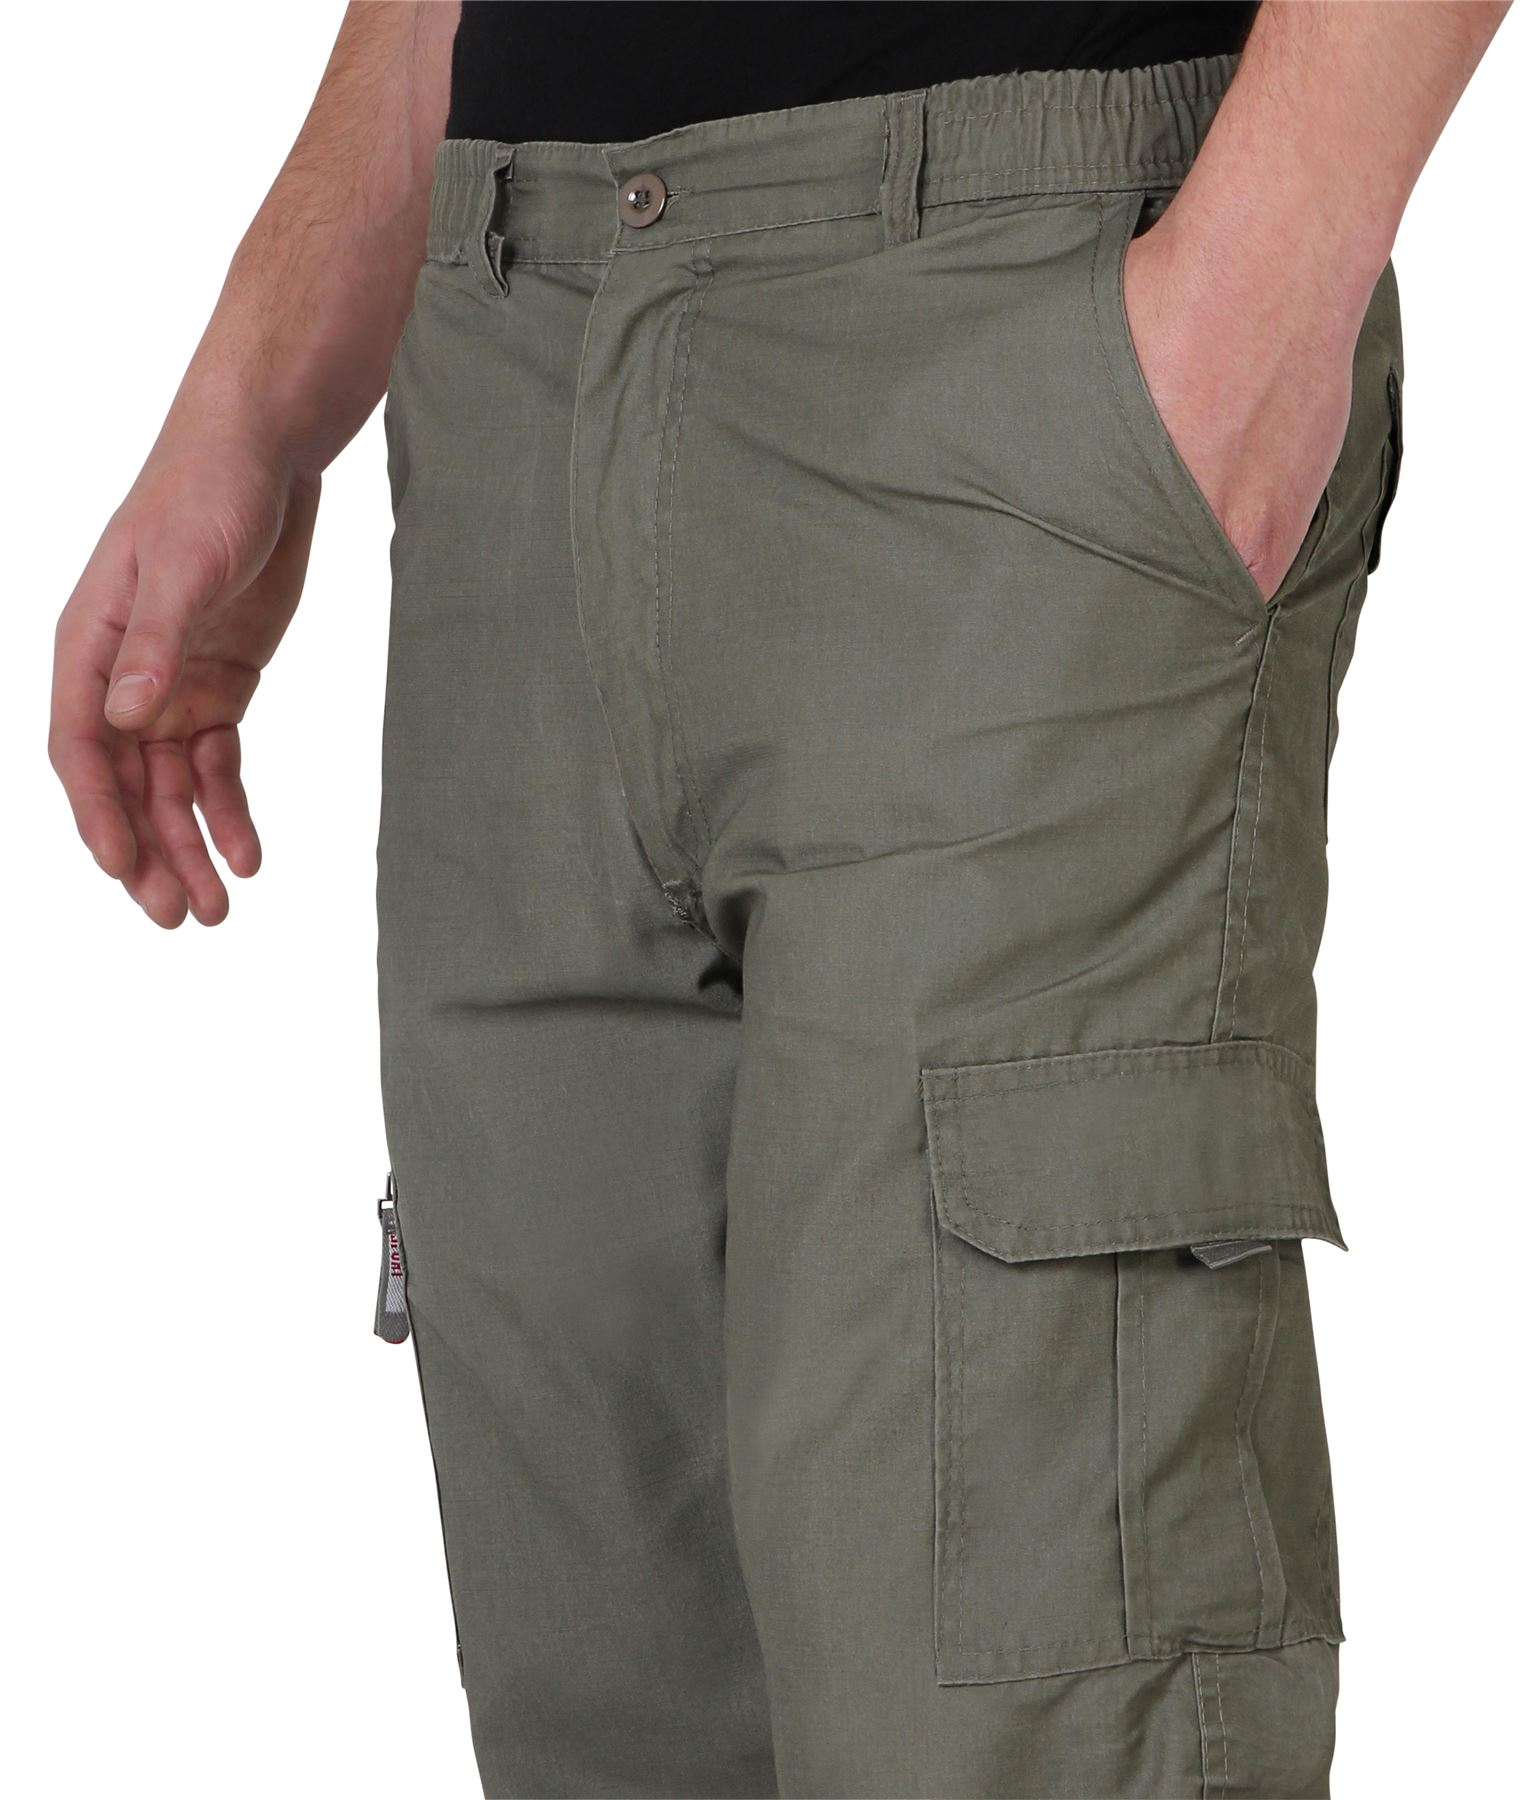 Mens-Army-Cargo-Trousers-Cotton-Combat-Pants-Military-Work-Chinos-Casual-Khakis thumbnail 21